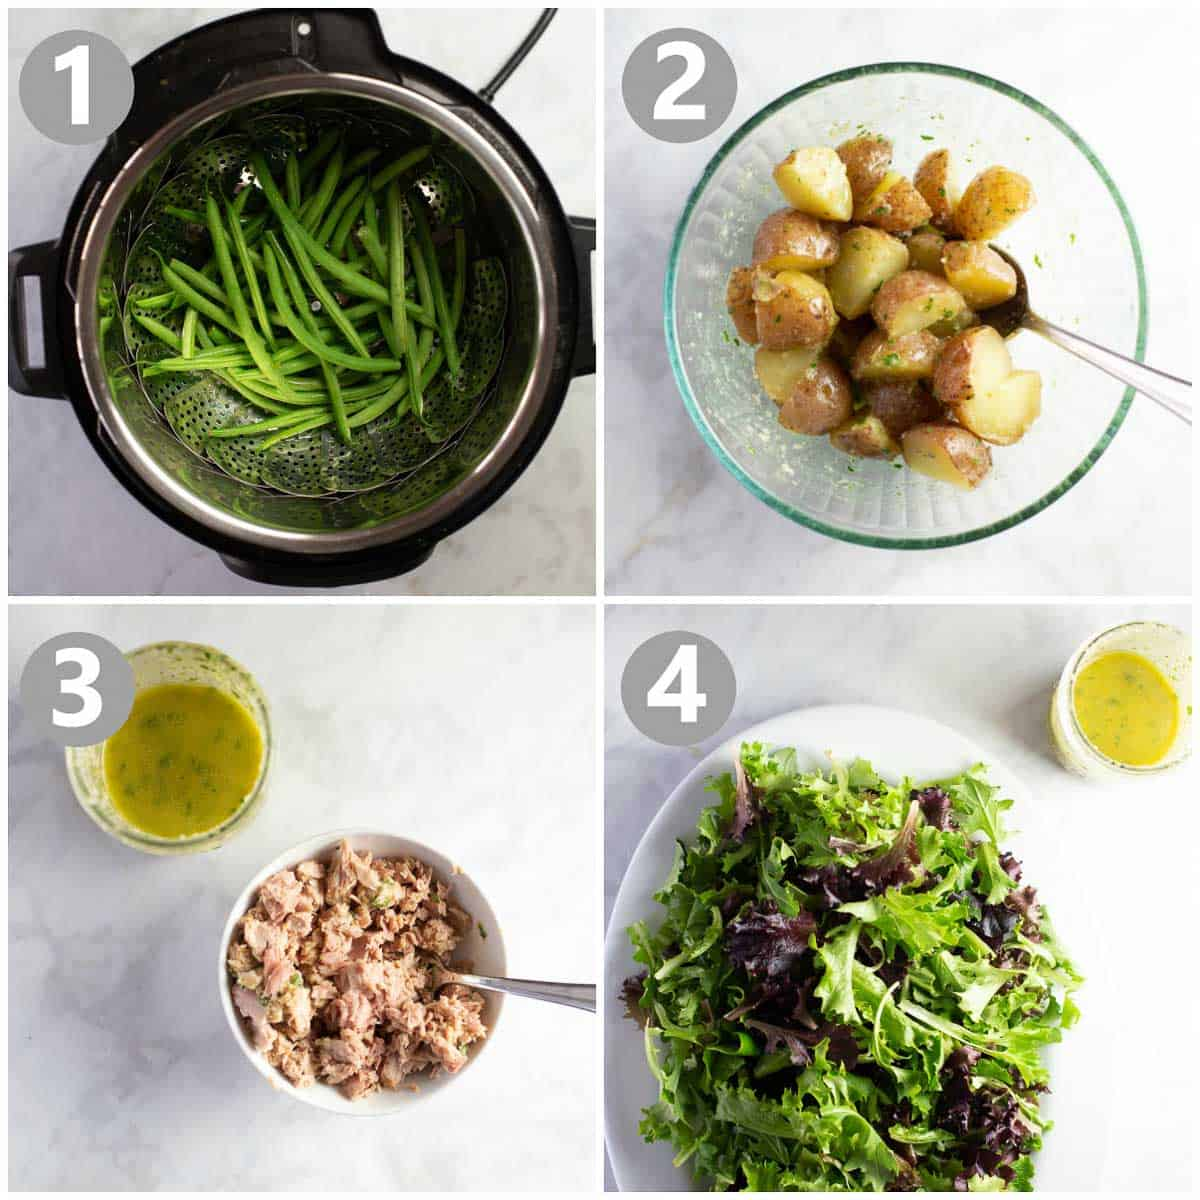 Step-by-step instructions on how to make a salad nicoise